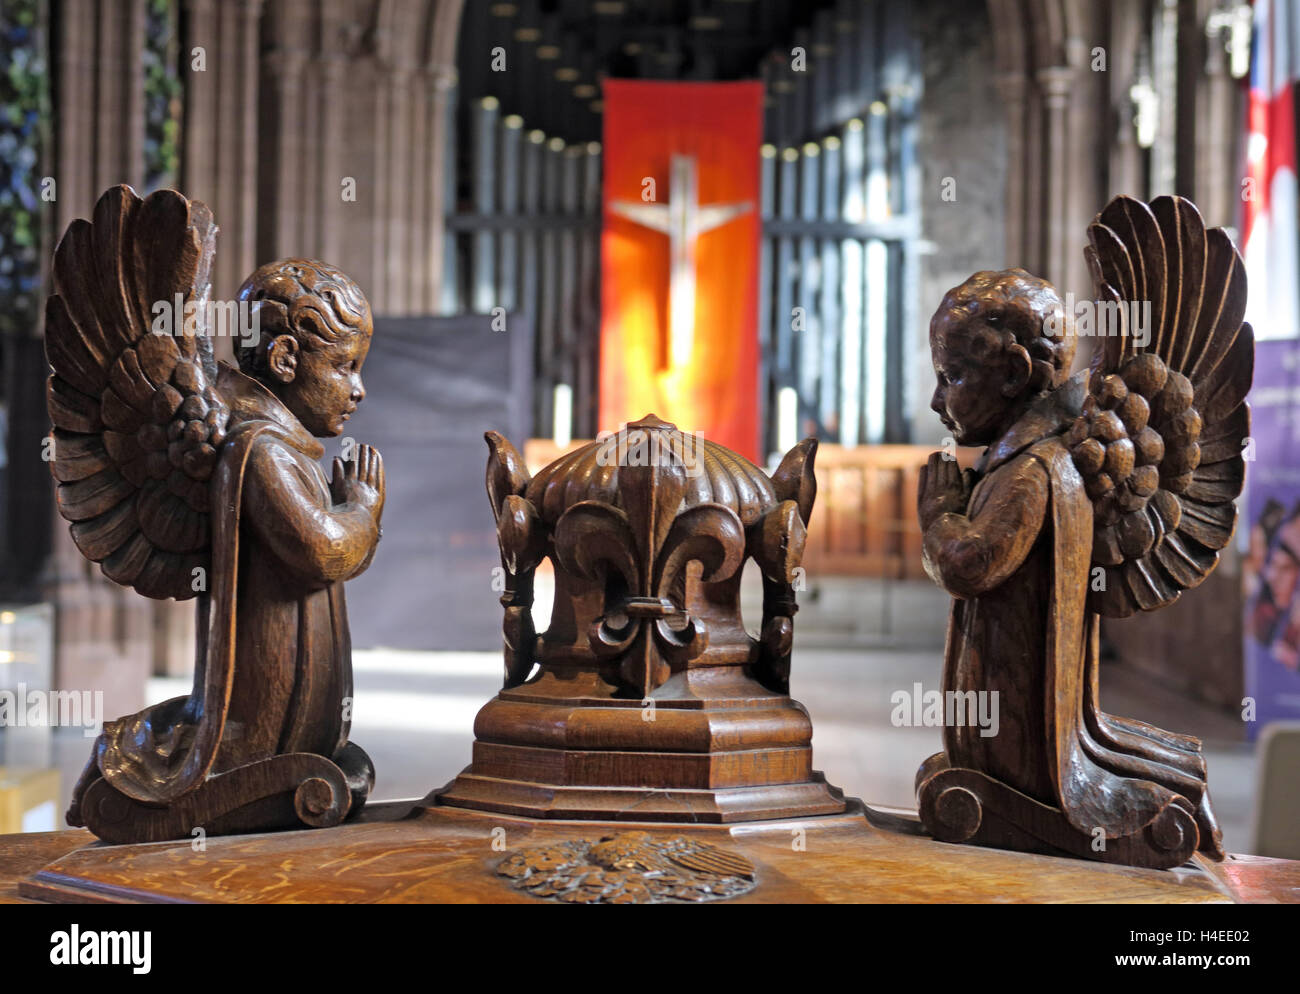 pipe,cross,Jesus,Christ,religious,Crucifixion,Christian,church,inside,interior,metal,alloy,sacred,tourist,landmark,tourism,orange,red,font,wood,wooden,carving,carved,angels,pray,prayer,praying,angel,building,architecture,organ pipe,organ pipes,Manchester cathedral,GoTonySmith,@HotpixUK,Tony,Smith,UK,GB,Great,Britain,United,Kingdom,English,British,England,Buy Pictures of,Buy Images Of,Images of,Stock Images,Tony Smith,United Kingdom,Great Britain,British Isles